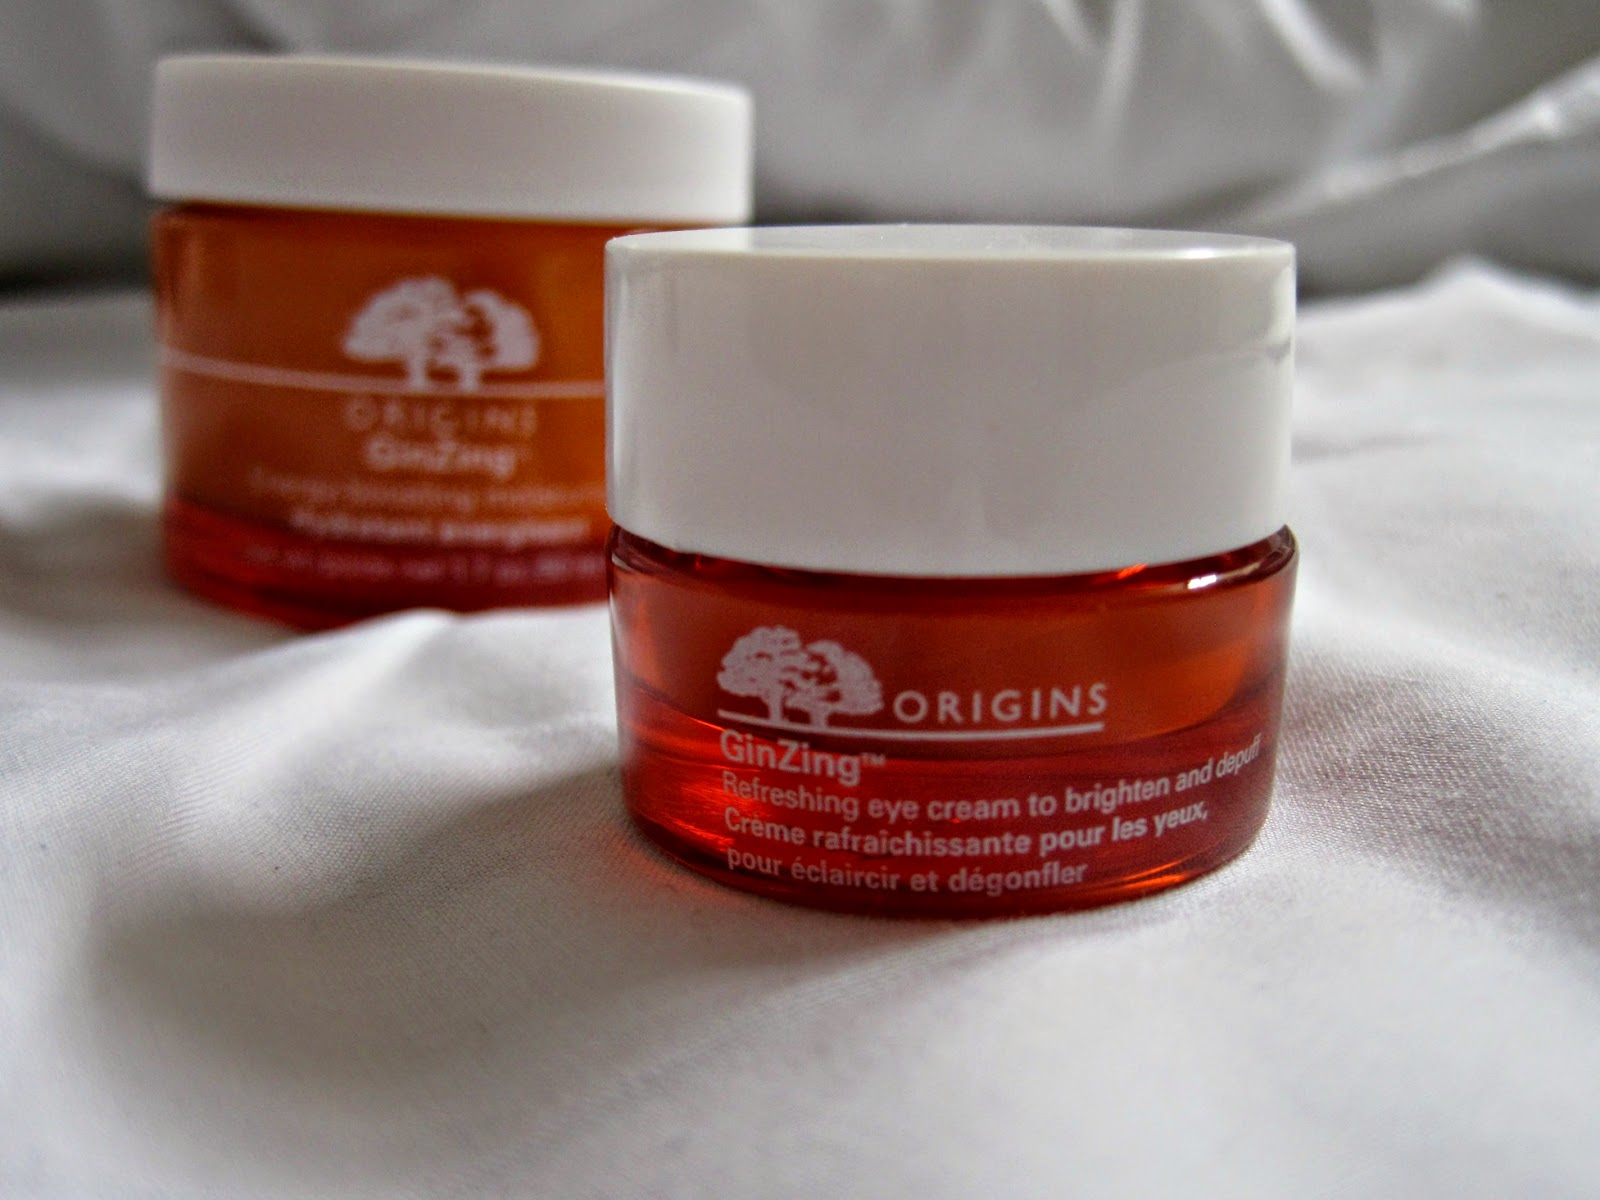 origins gin zing eye cream dark circles refreshing and brightening review spring may april easter